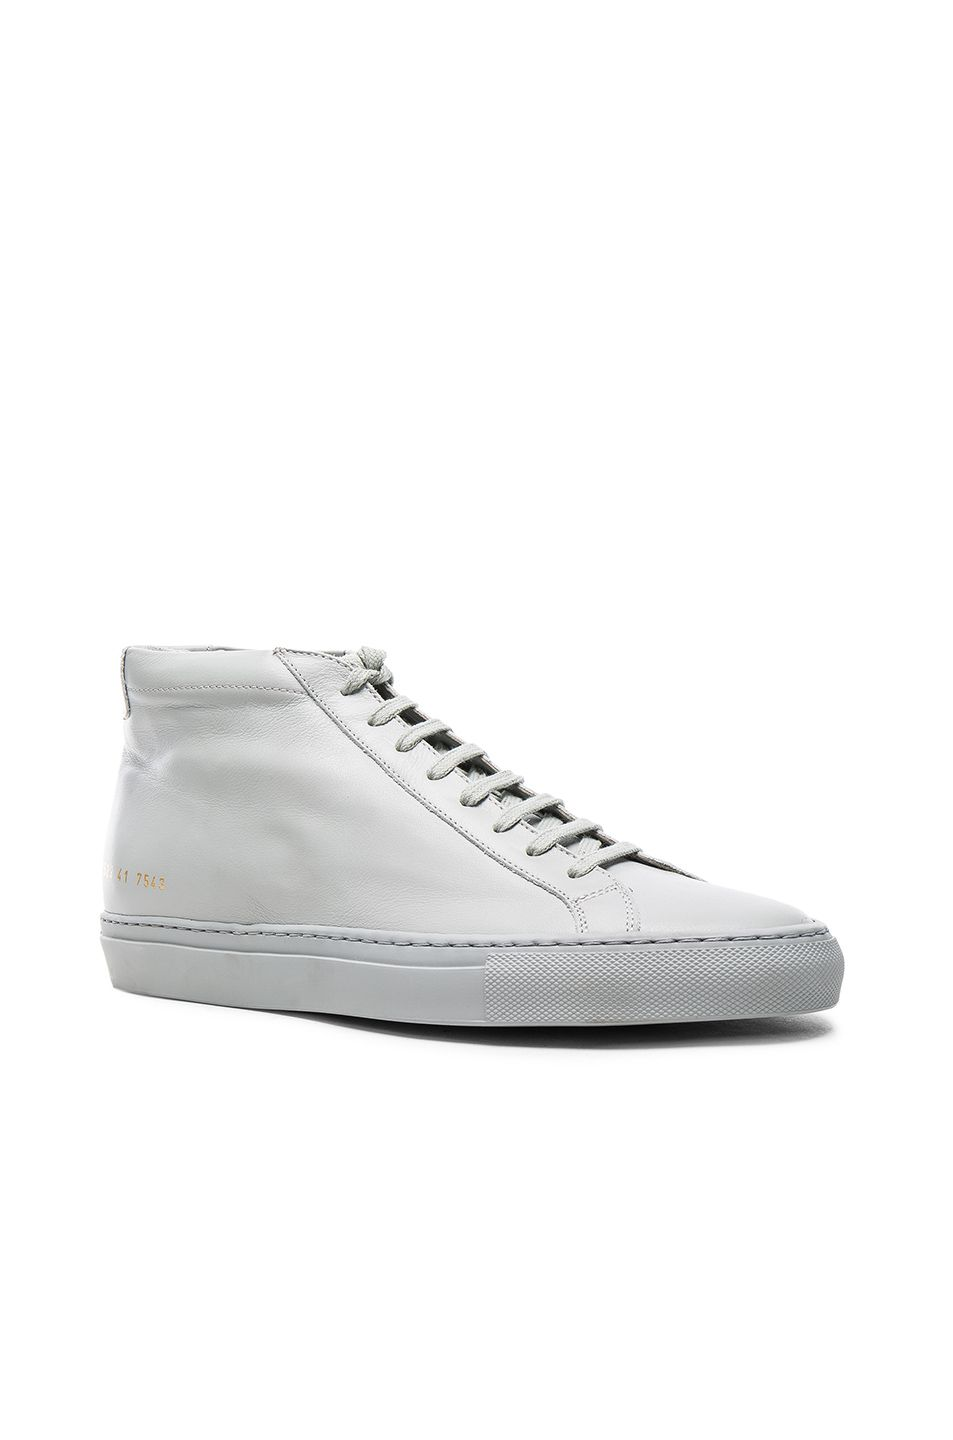 f5f0f553a60 COMMON PROJECTS COMMON PROJECTS ORIGINAL LEATHER ACHILLES MID IN GRAY. # commonprojects #shoes